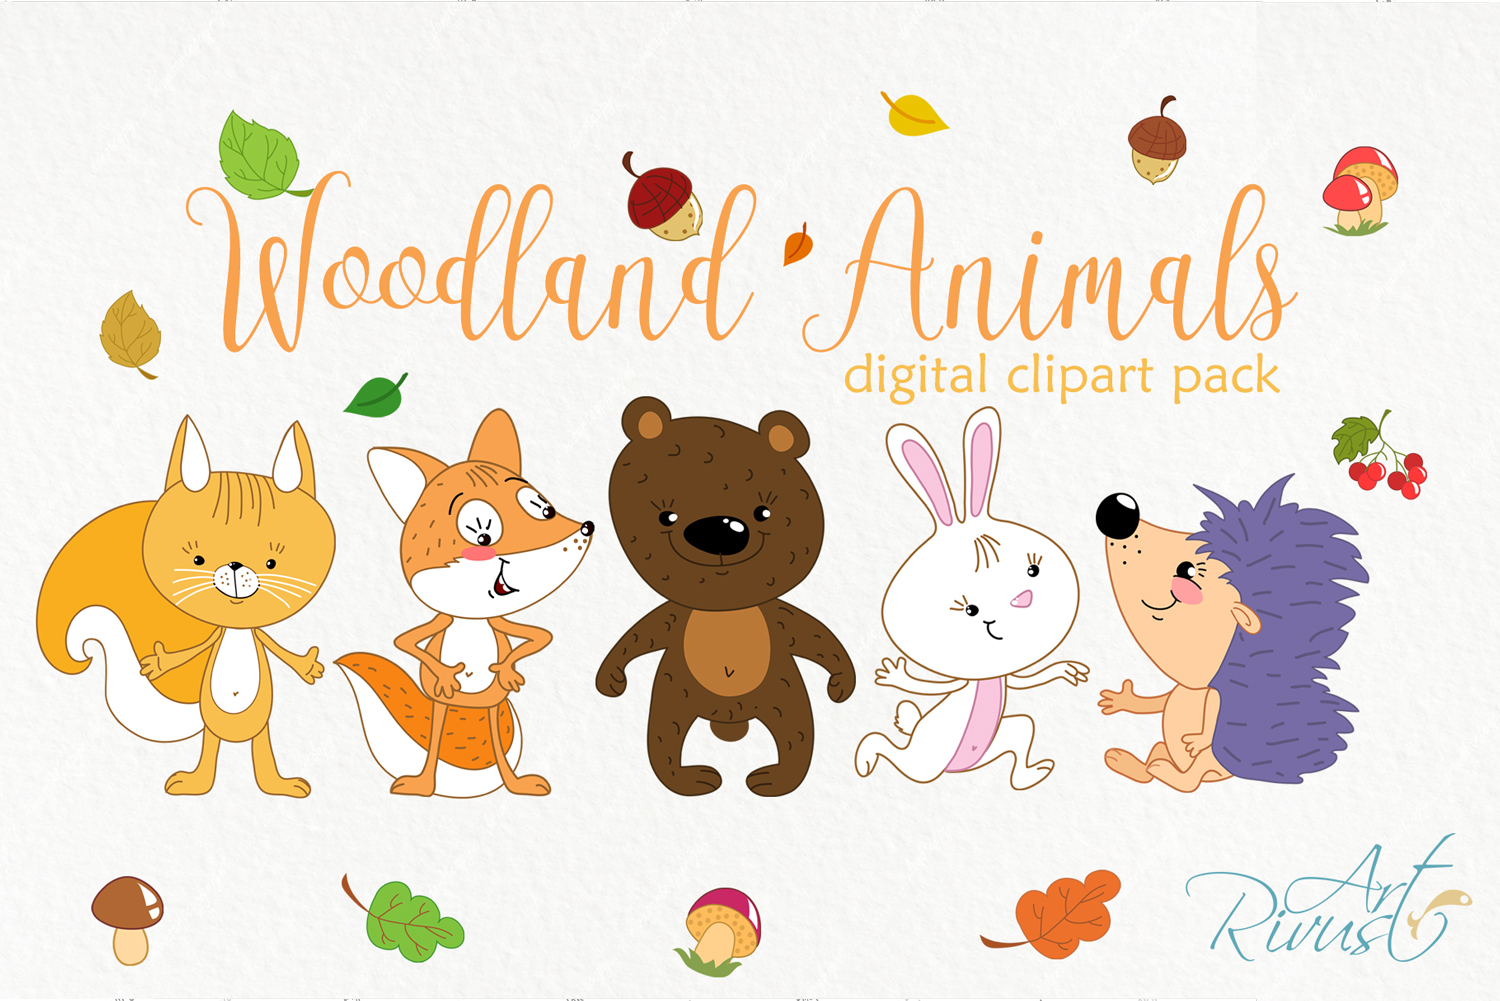 Forest friends clipart. Woodland cute animals clip art. clip art black and white